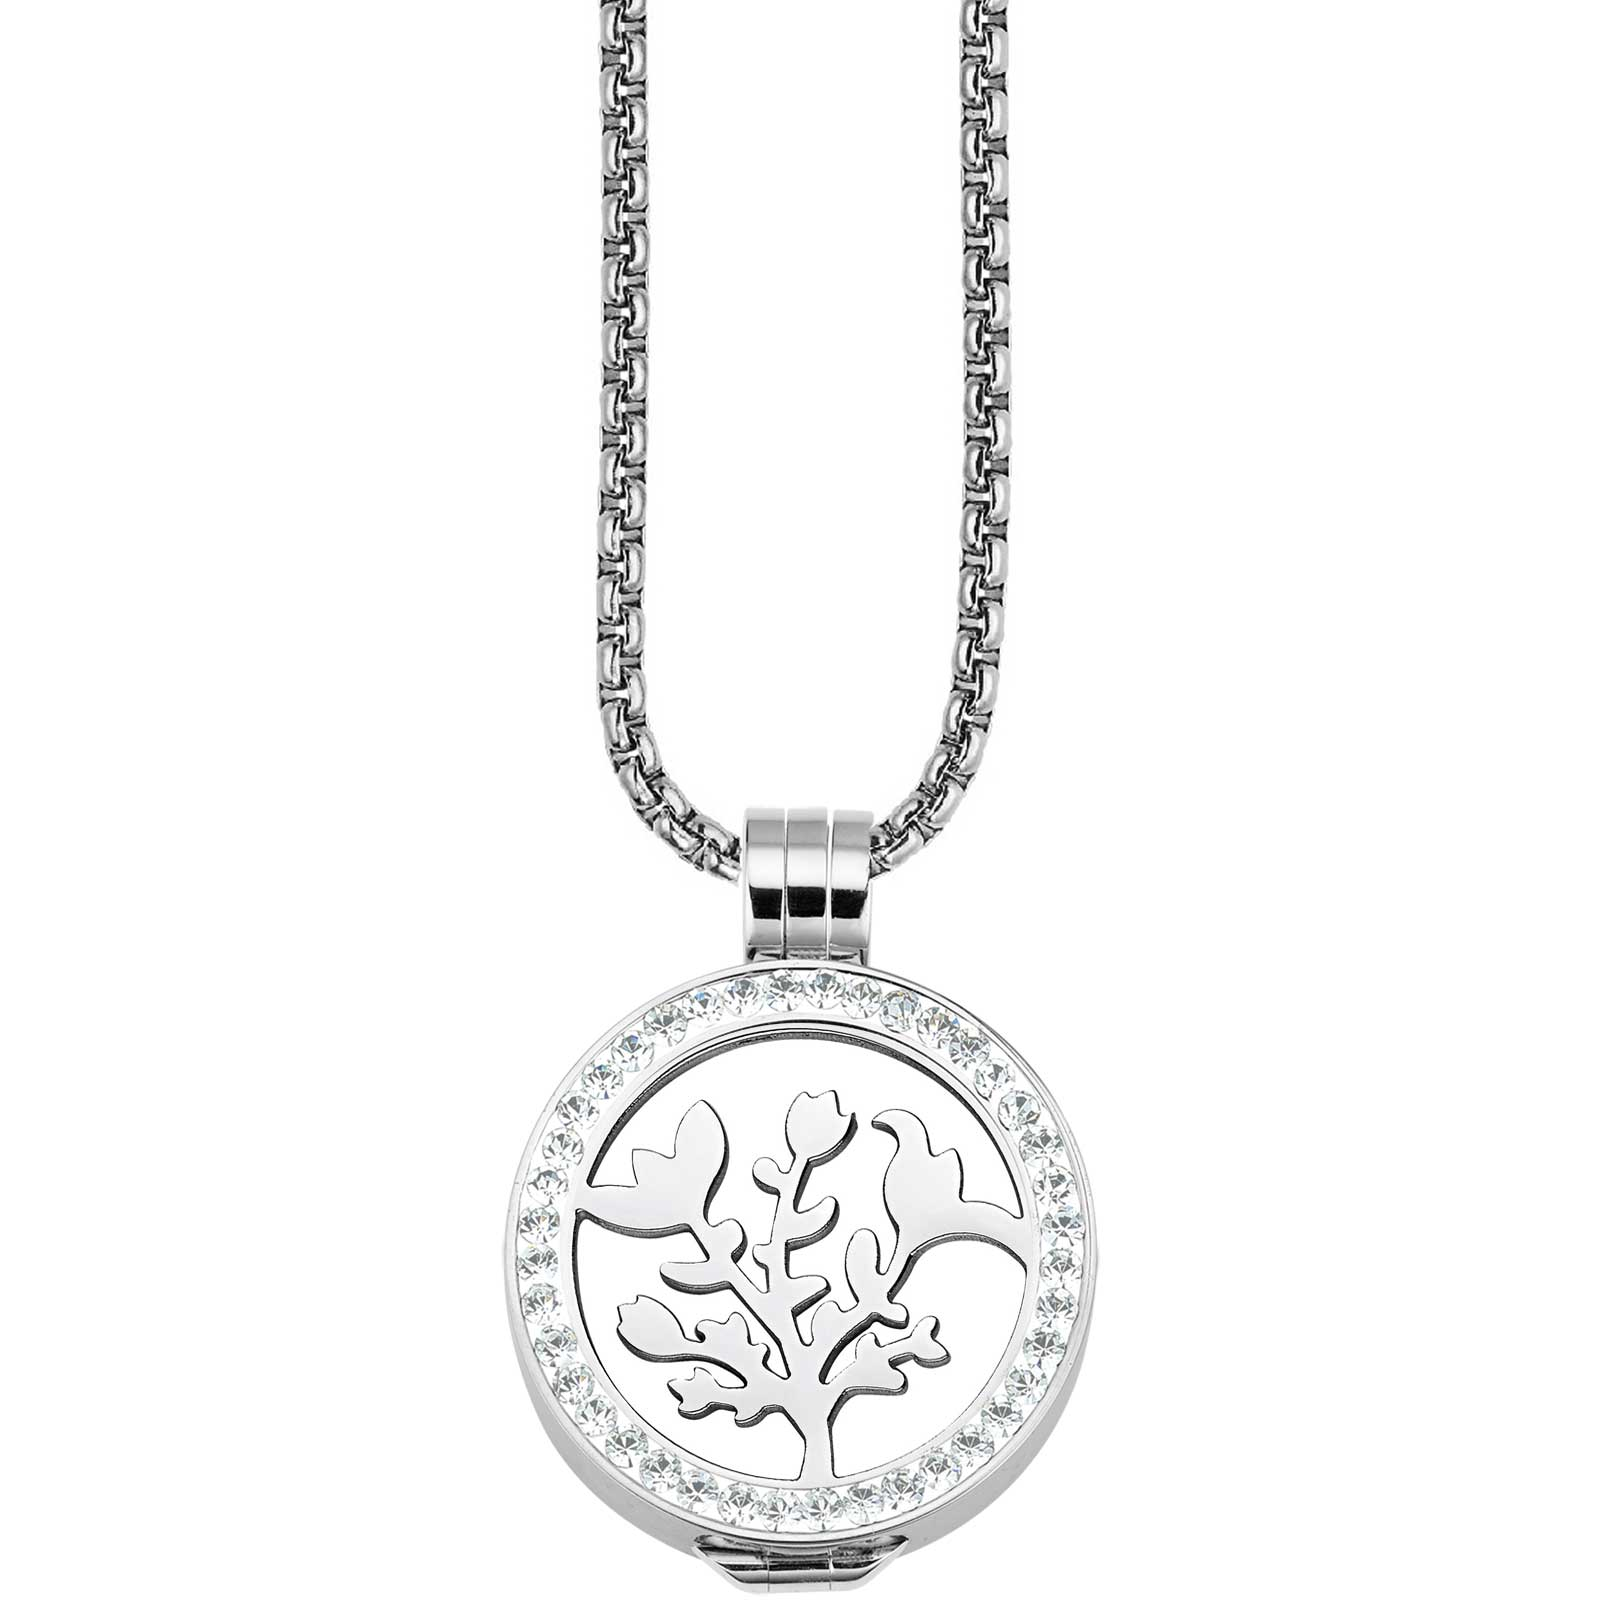 CS004_Coin-Fassung_mit_Coin_CS171_CS172_Coin_Blume_Kette